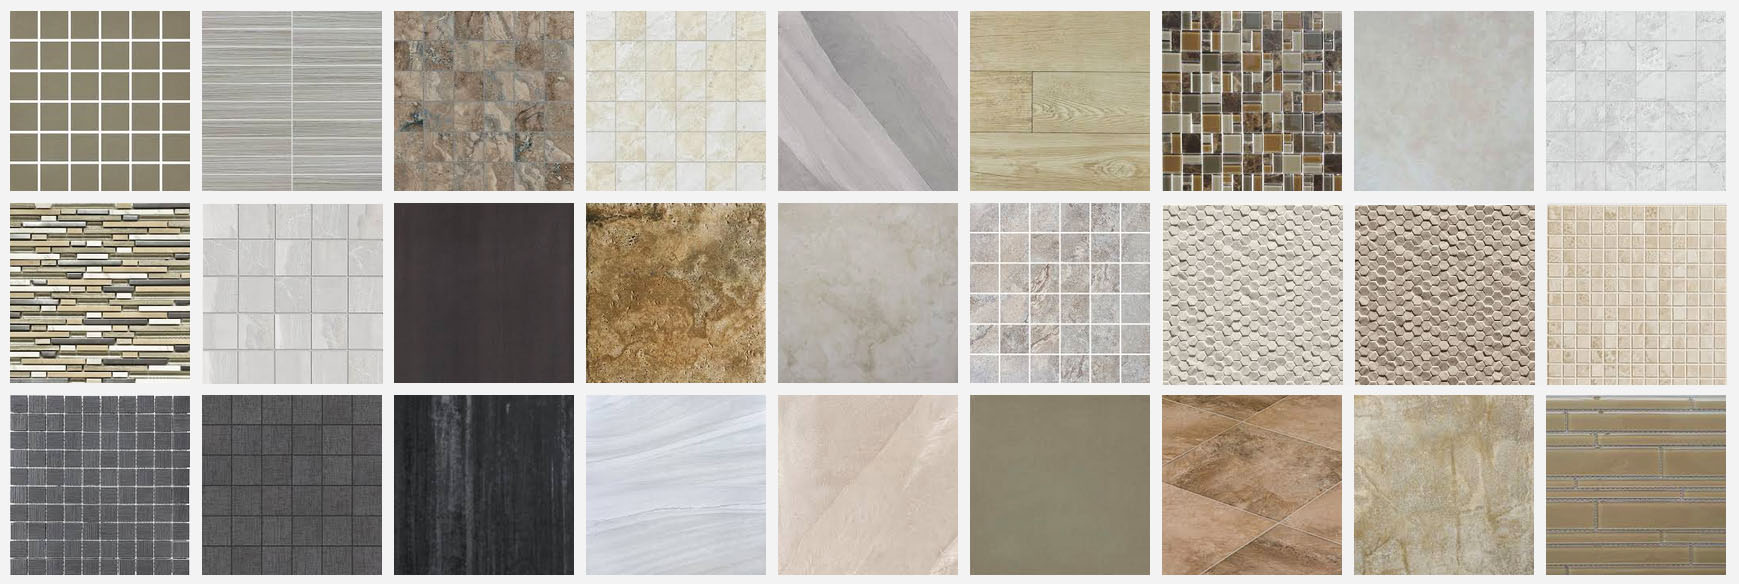 Top 30 Tile Floor Samples 4x4 Glass